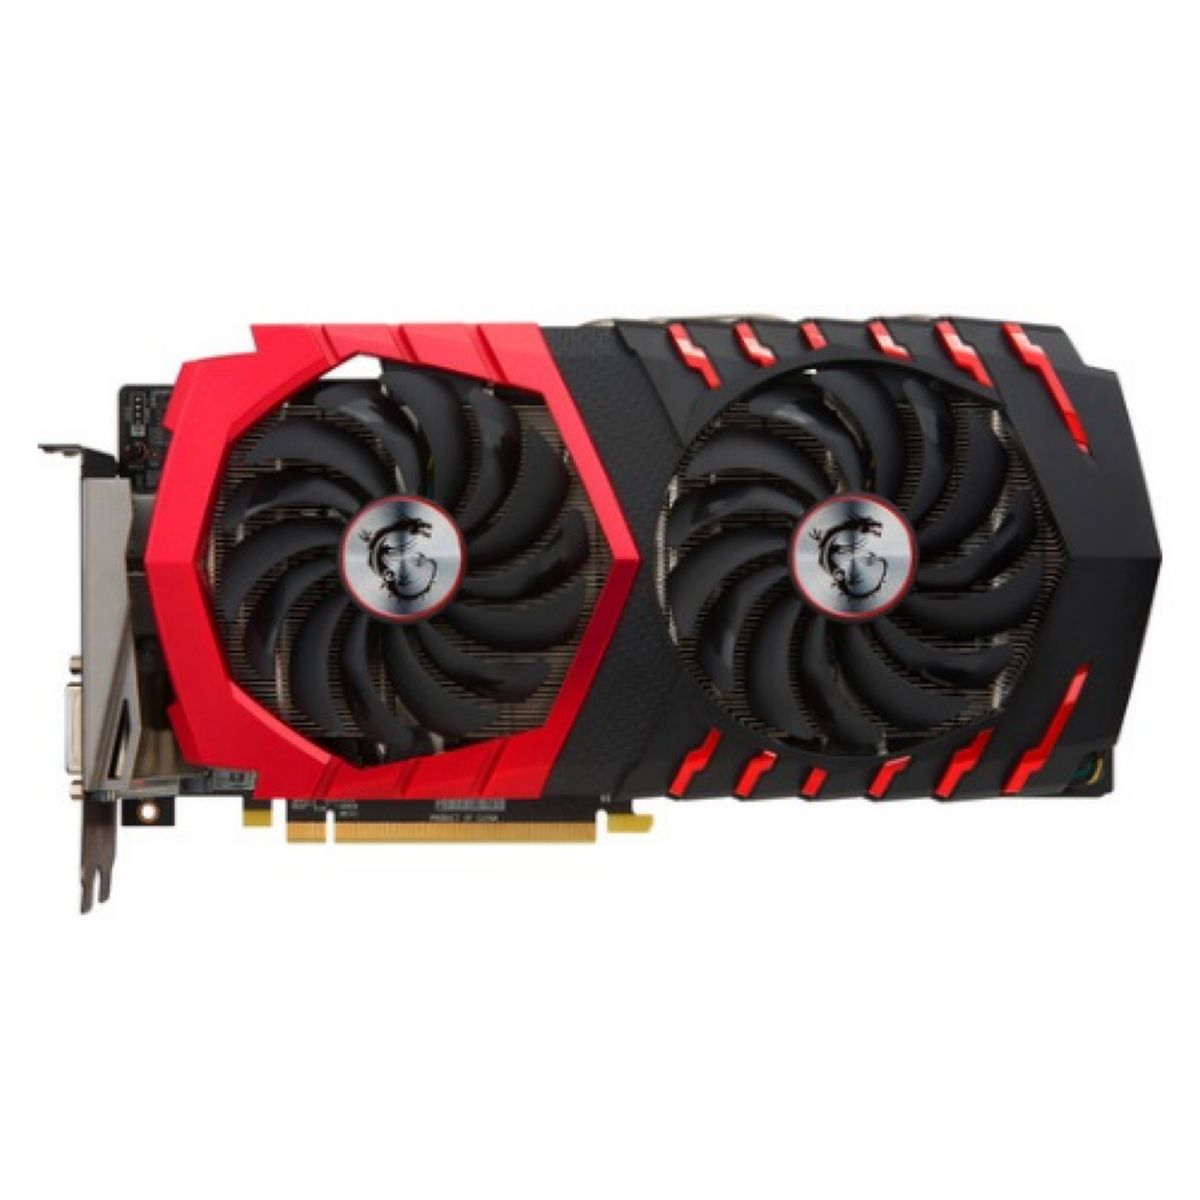 Tarj. Vga Msi Rx570 4gb Gaming X Ddr5